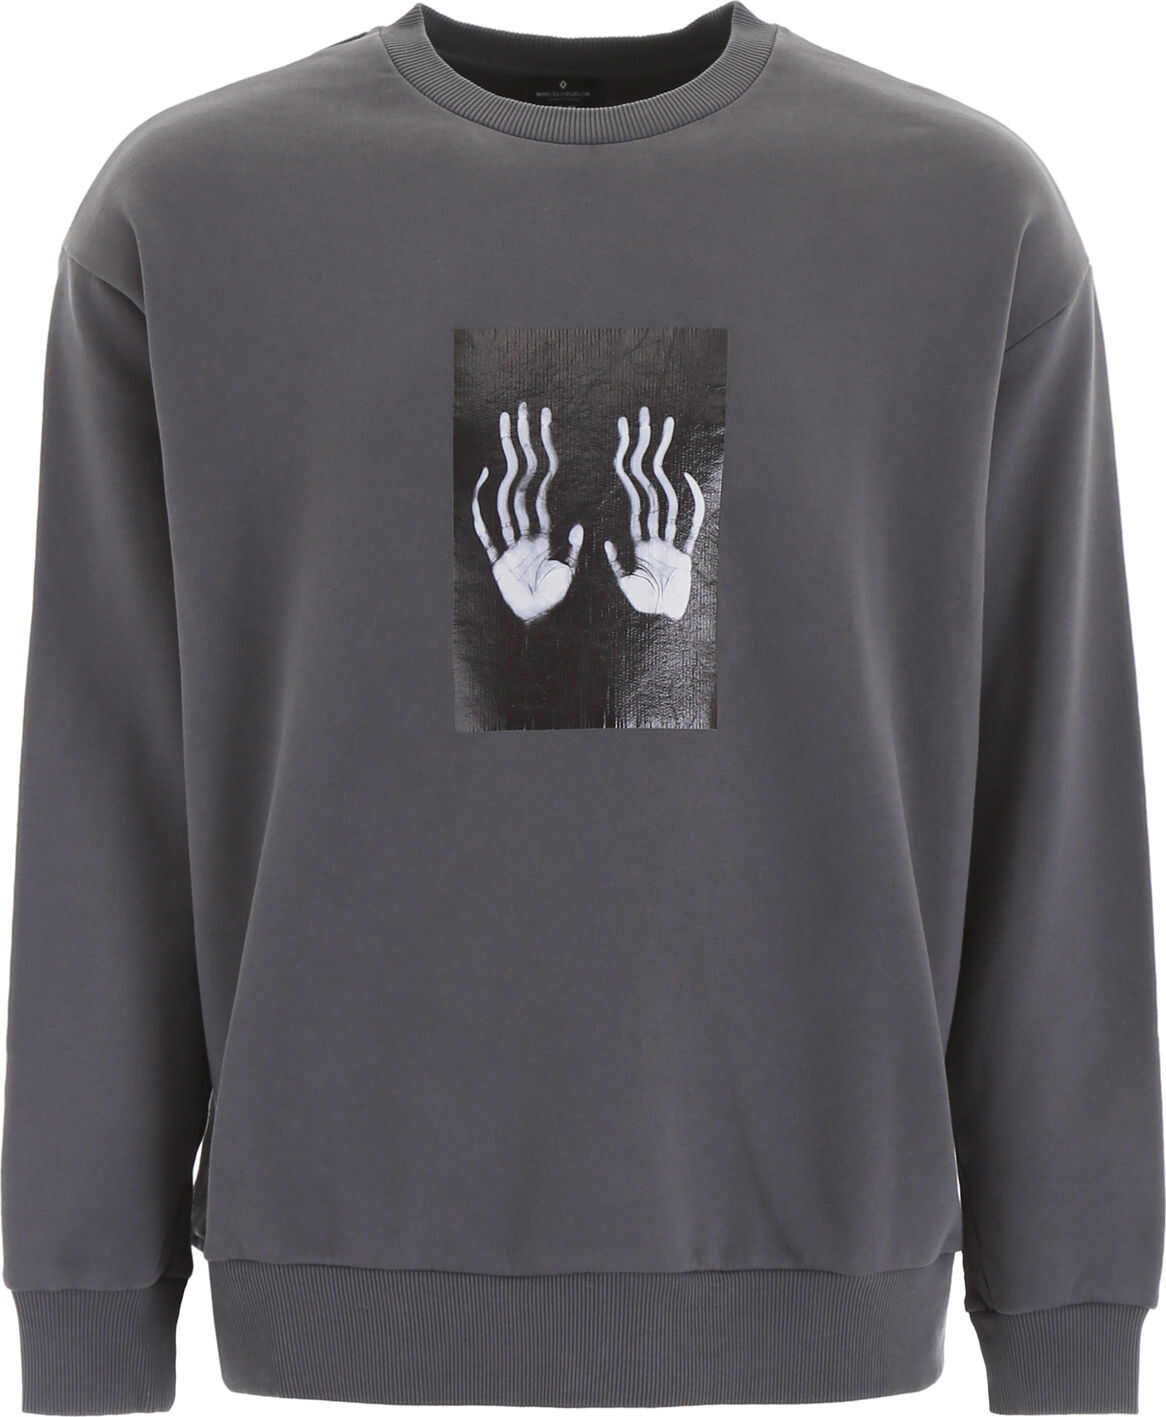 Marcelo Burlon Hands Square Sweatshirt DARK GREY LIGHT GREY